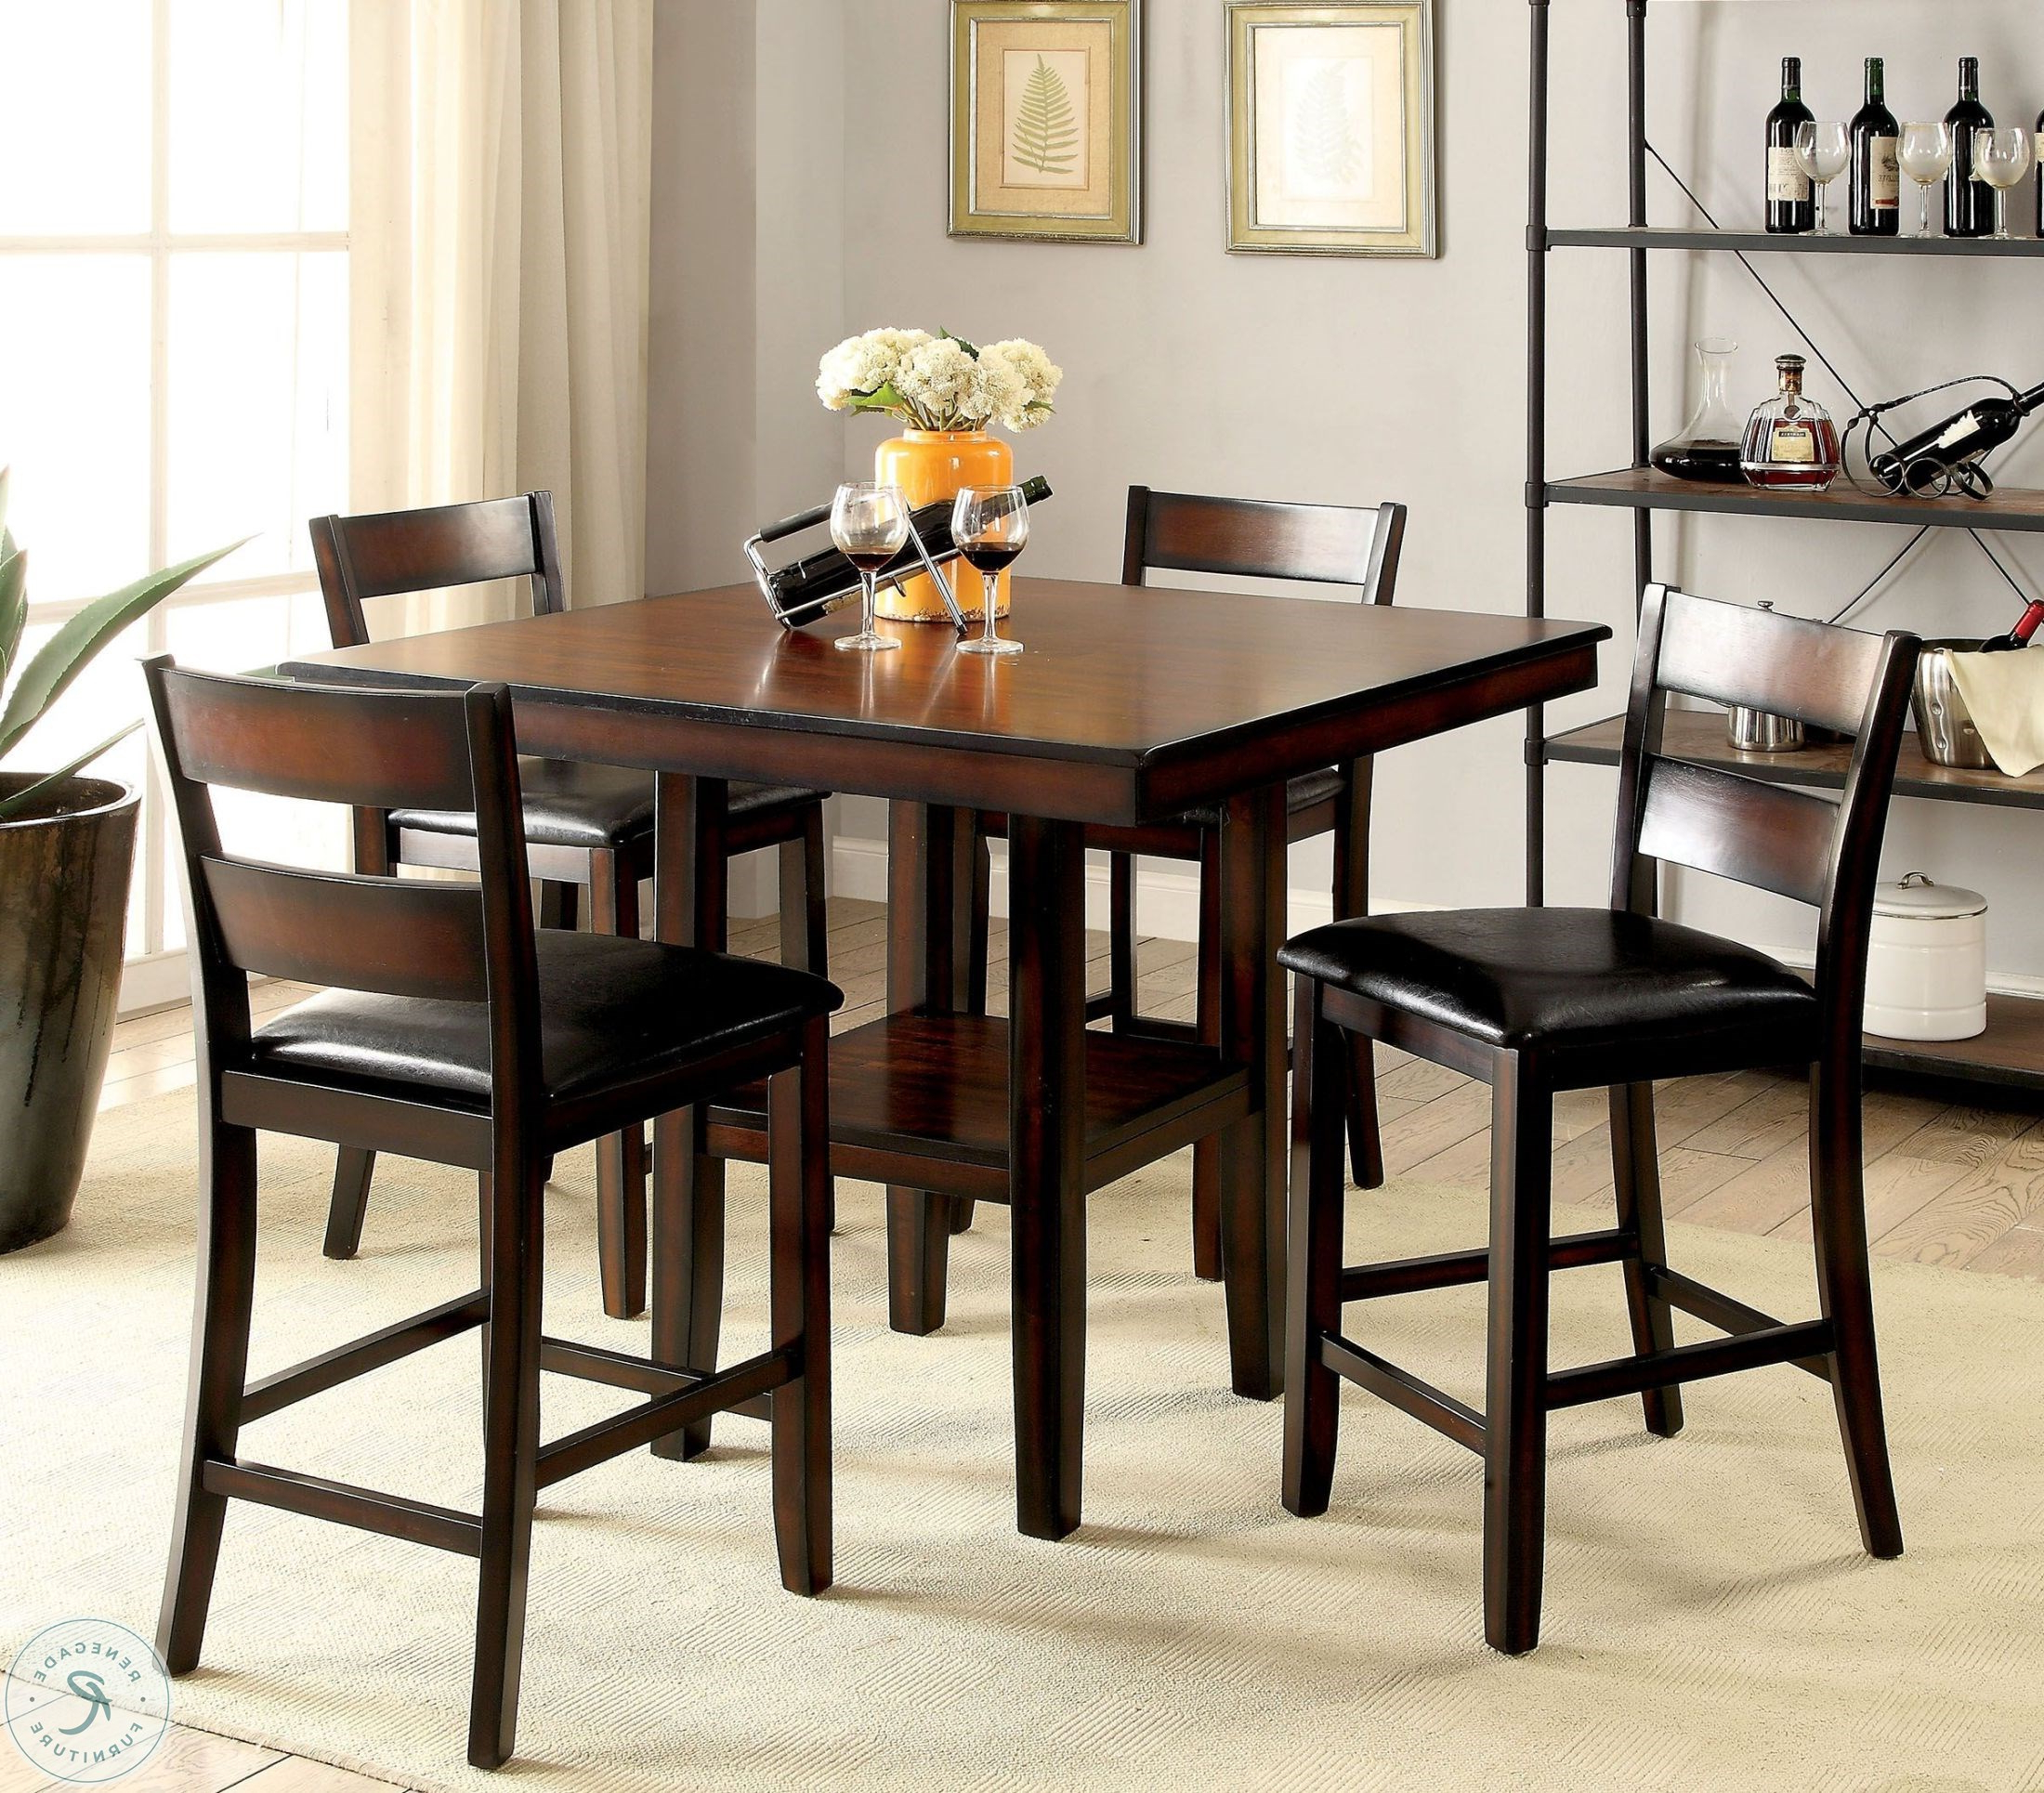 Anette 3 Piece Counter Height Dining Sets Regarding Recent Norah Ii Brown Cherry 5 Piece Counter Height Dining Set From (View 9 of 25)